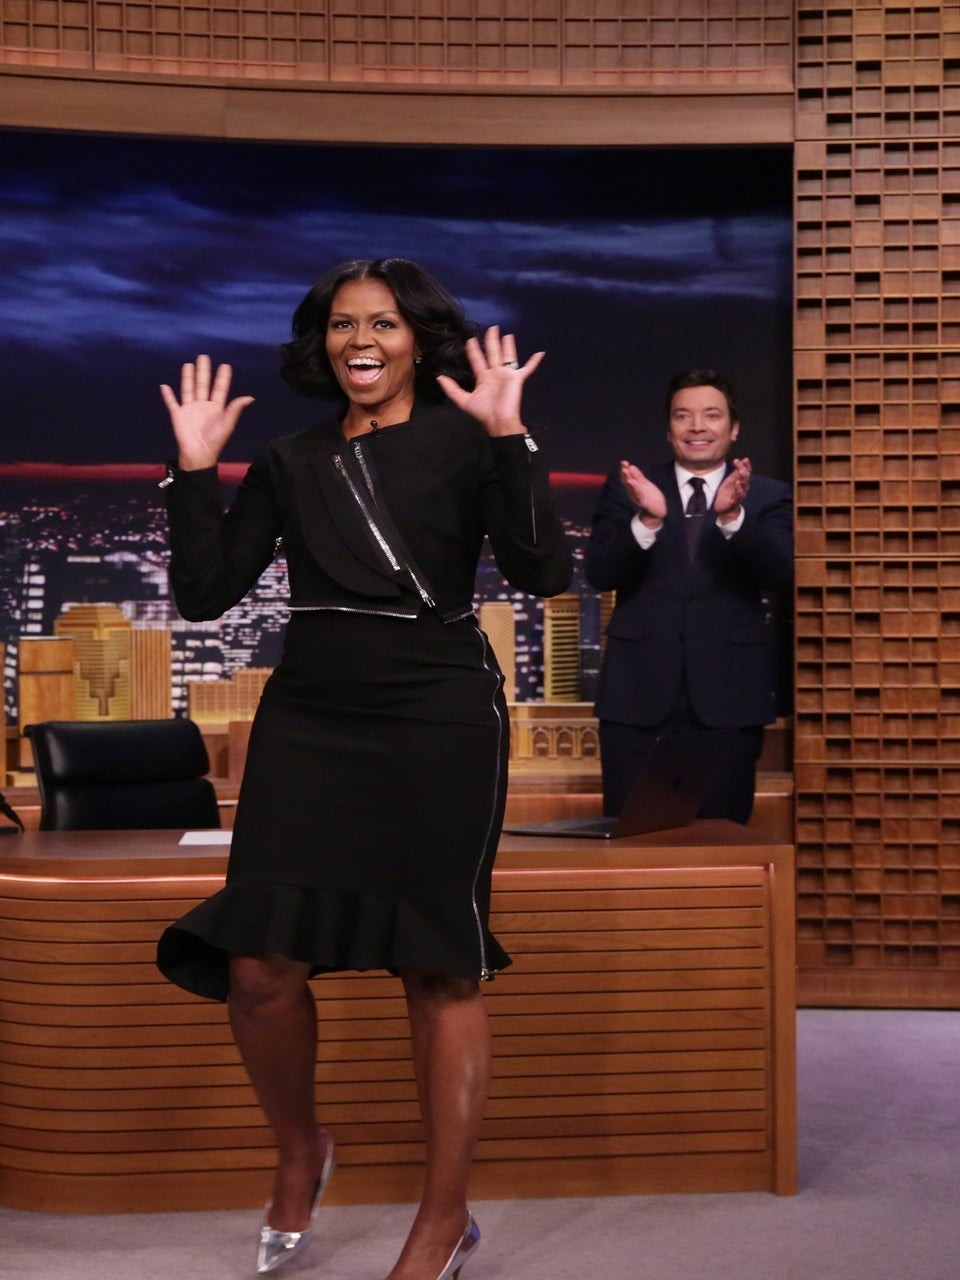 Michelle Obama's Emotional Goodbye On 'Fallon' Has Us All In Tears